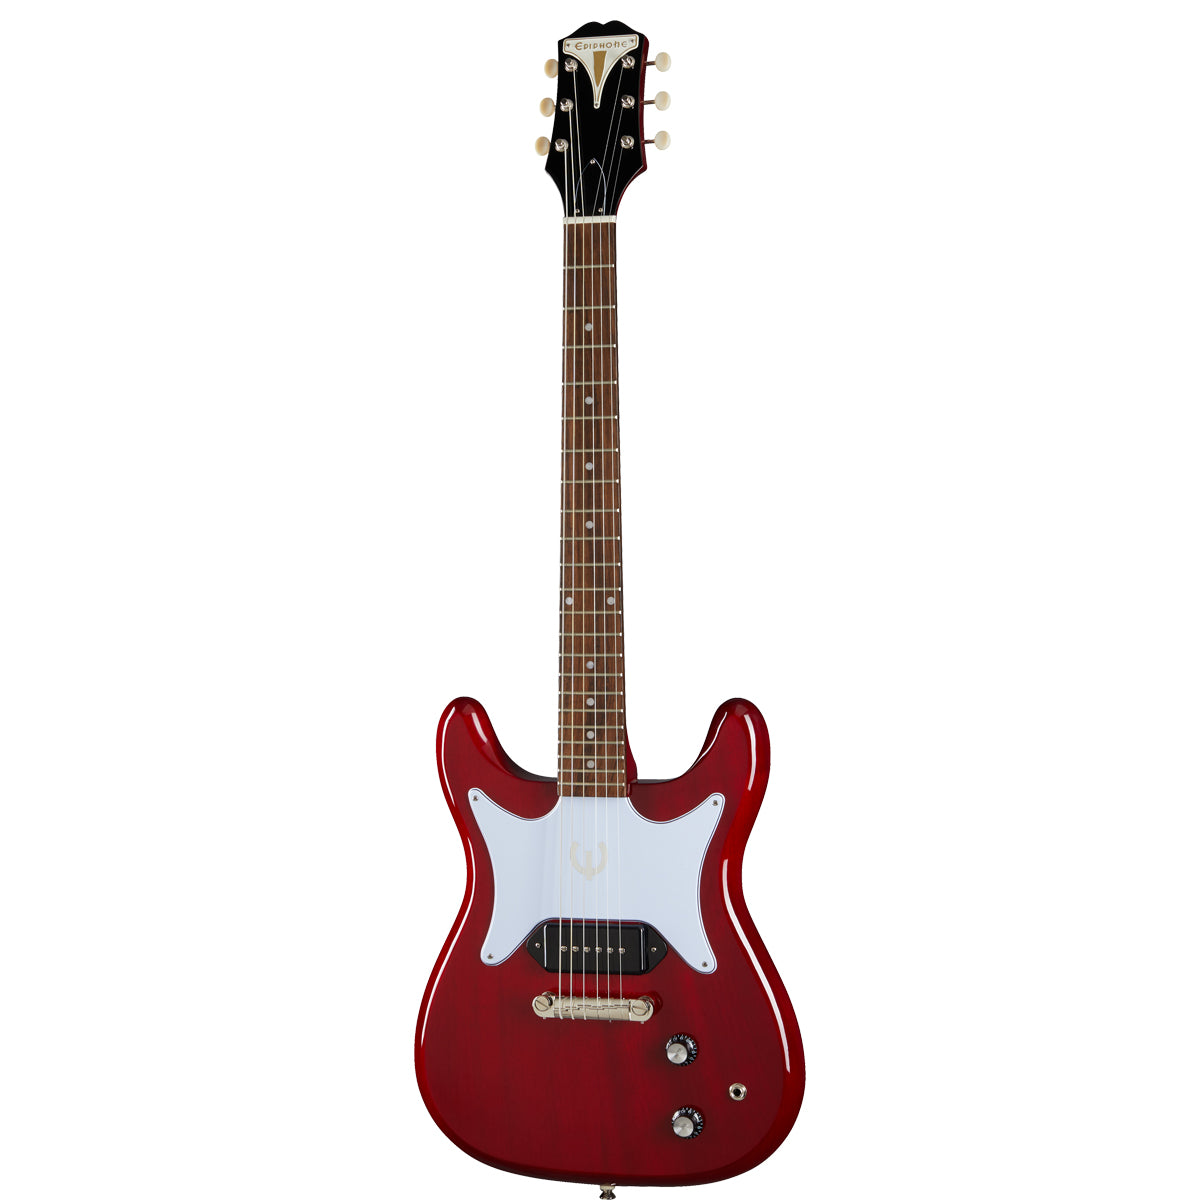 Epiphone Coronet Electric Guitar Cherry - EOCOCHNH1